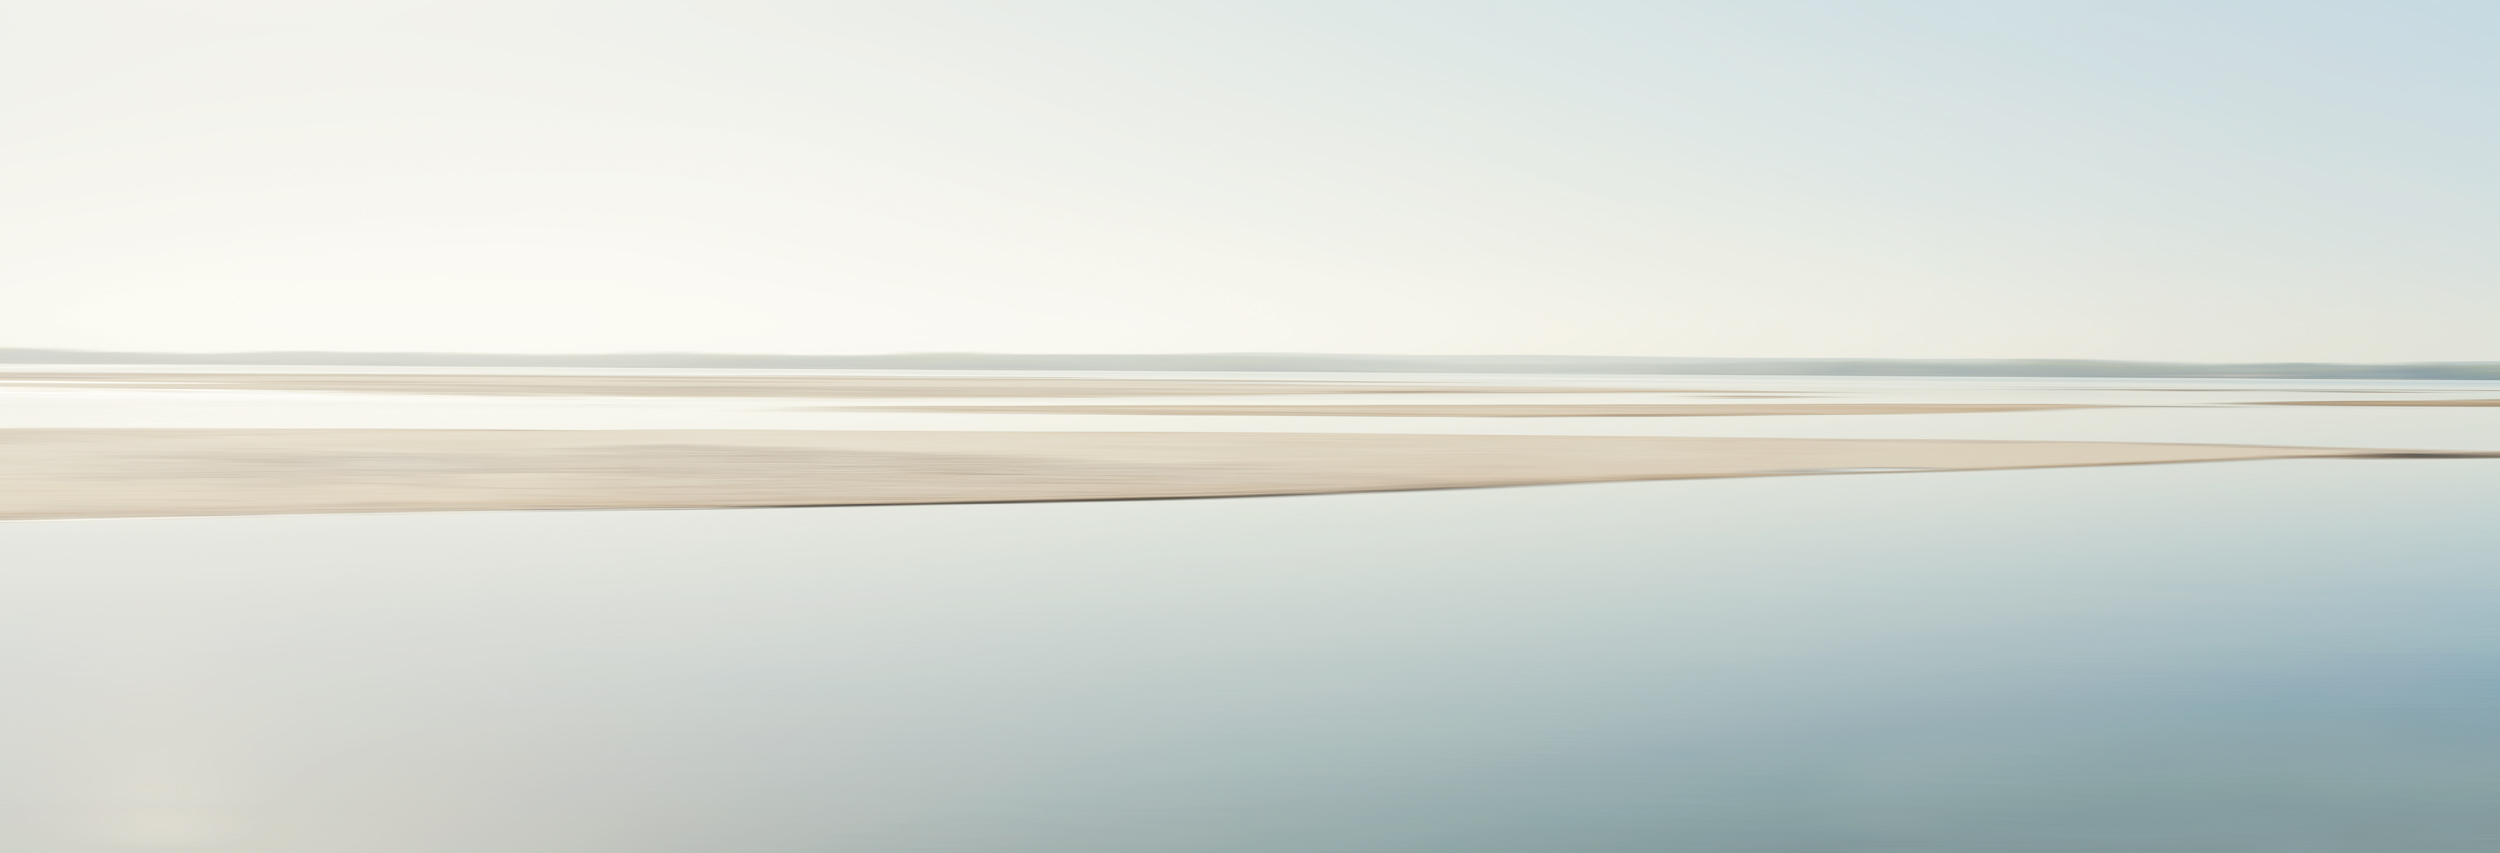 Mecox Bay, 2018, photo on aluminum, 72 x 23.5 in, edition of 5 (1 available), $5,000